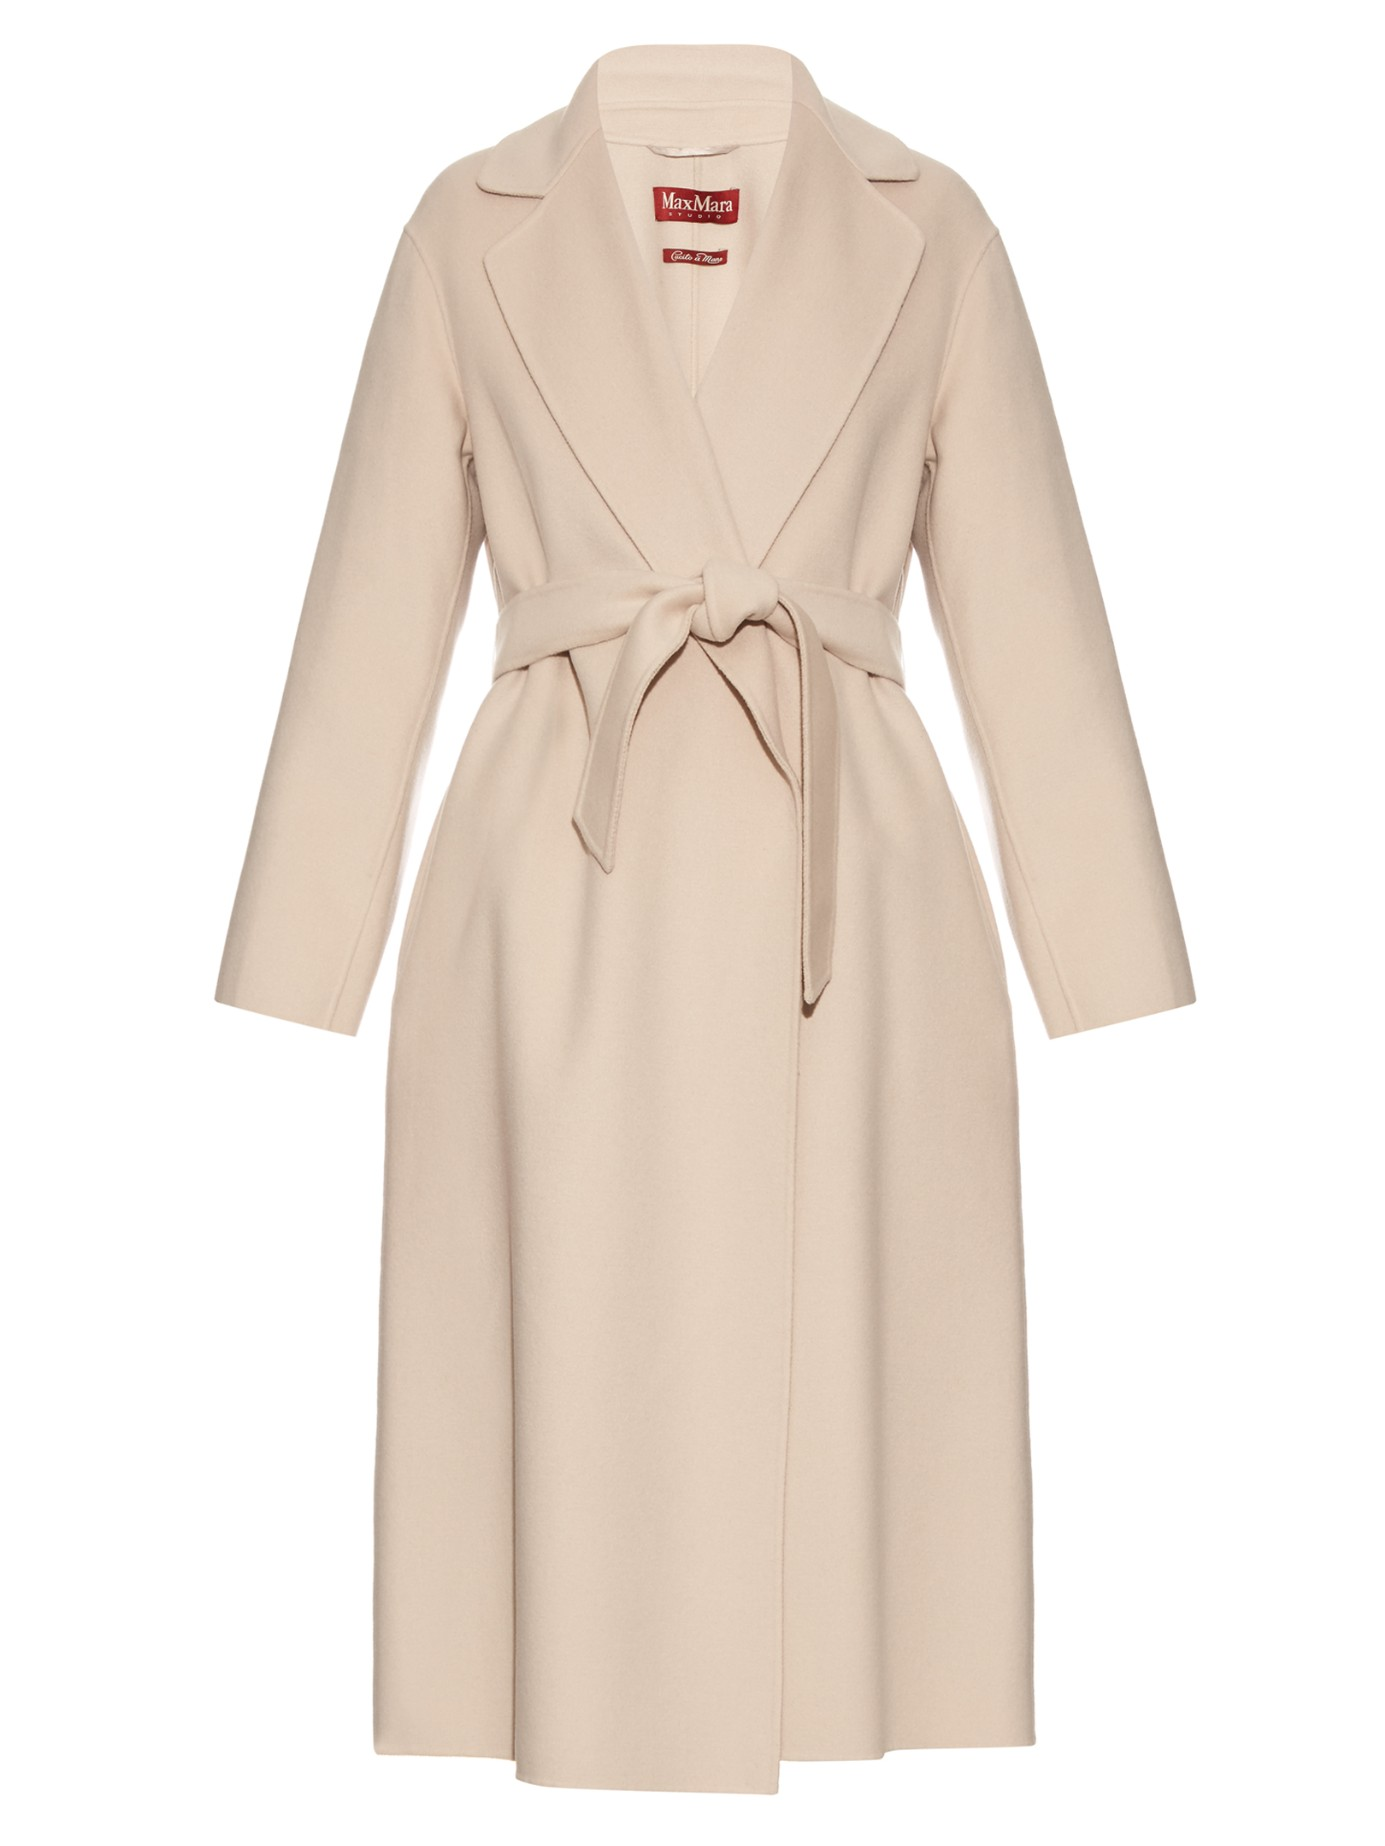 CASUAL CHIC: MAX MARA STUDIO Miki coat